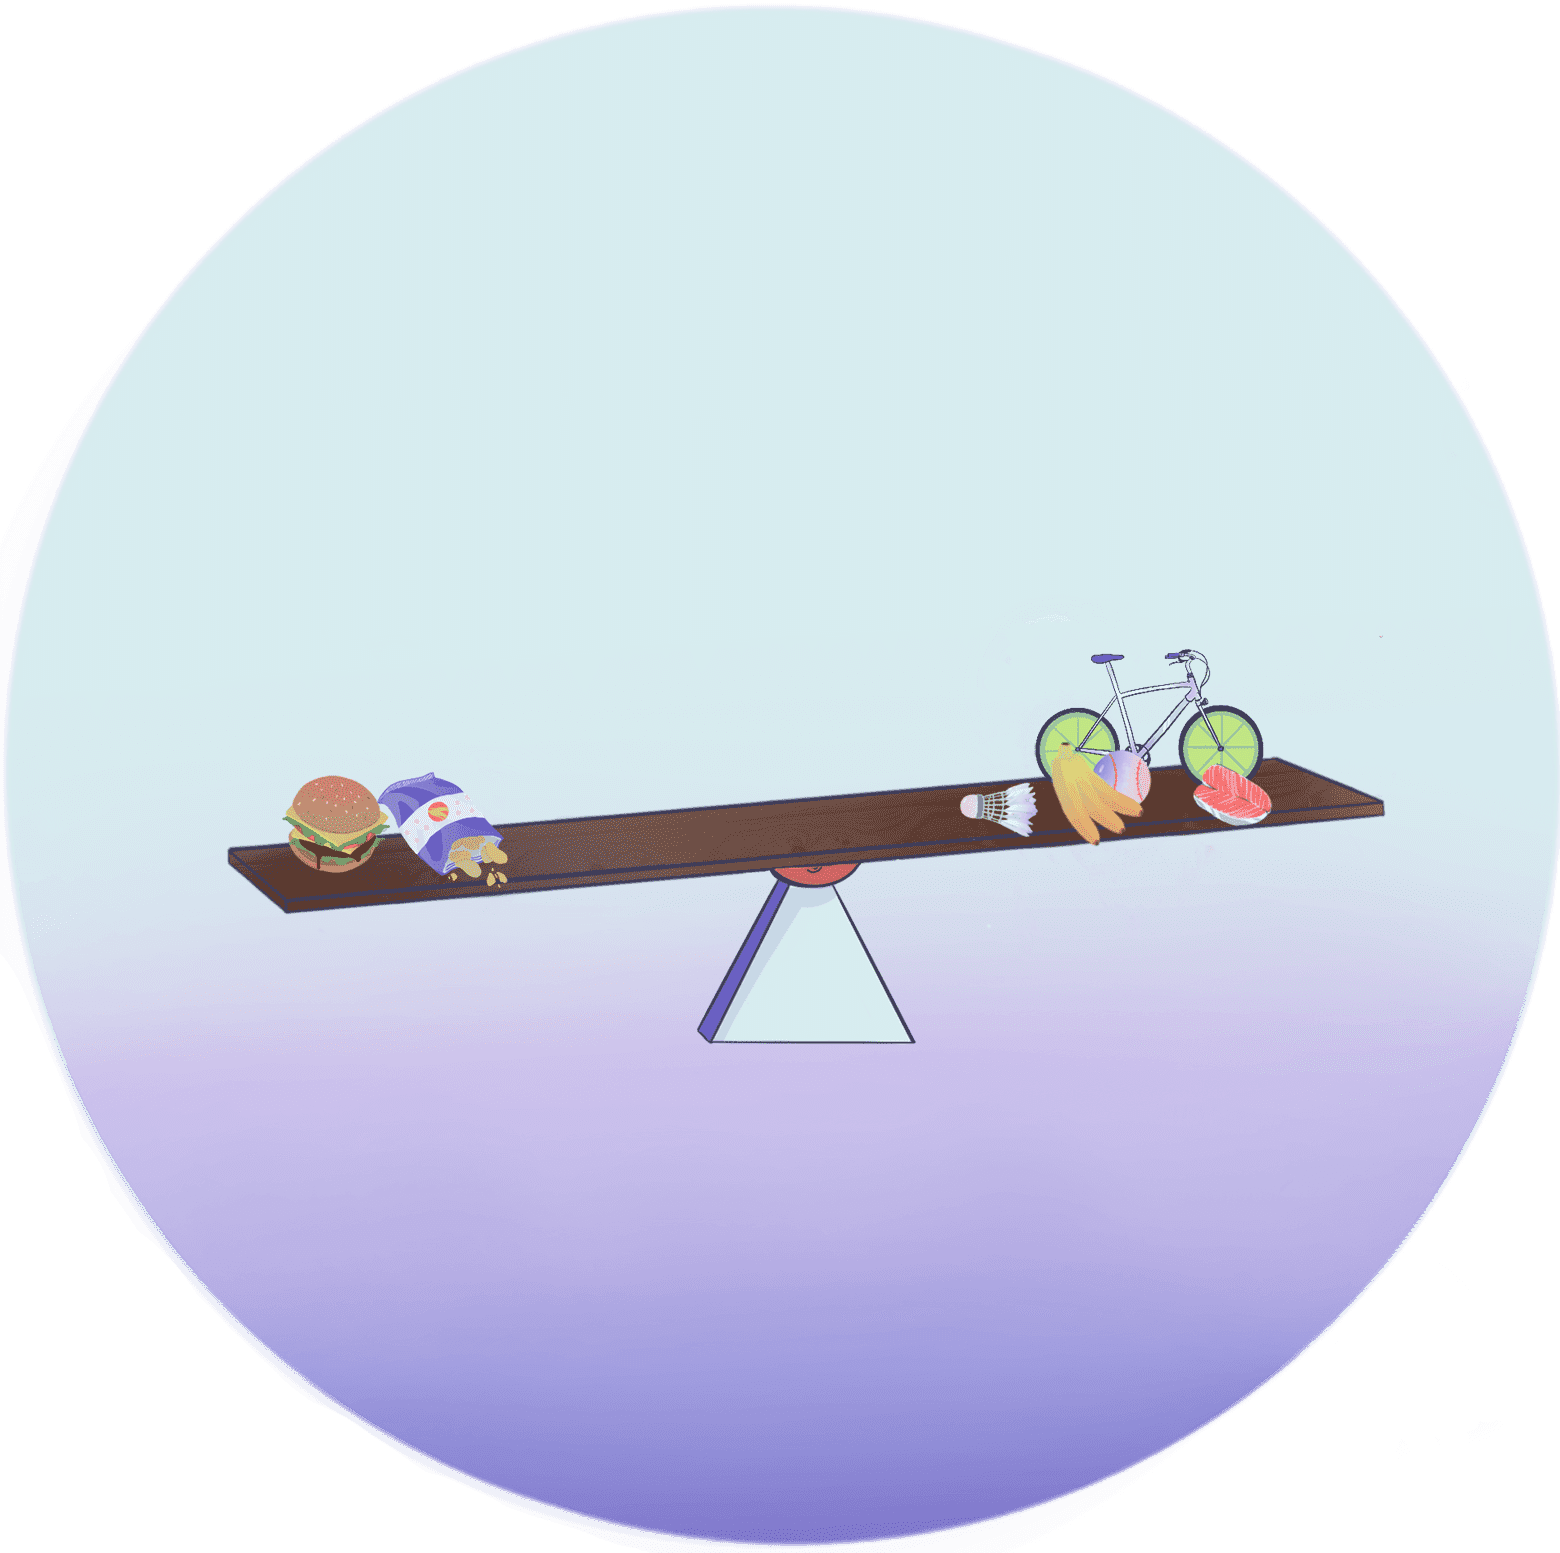 Illustration of seesaw. On one side is a bicycle, tennis ball, bananas, and piece of fish. On the other are chips and a hamburger. The side with fast food is tipped down slightly, indicating tipping the balance towards disease